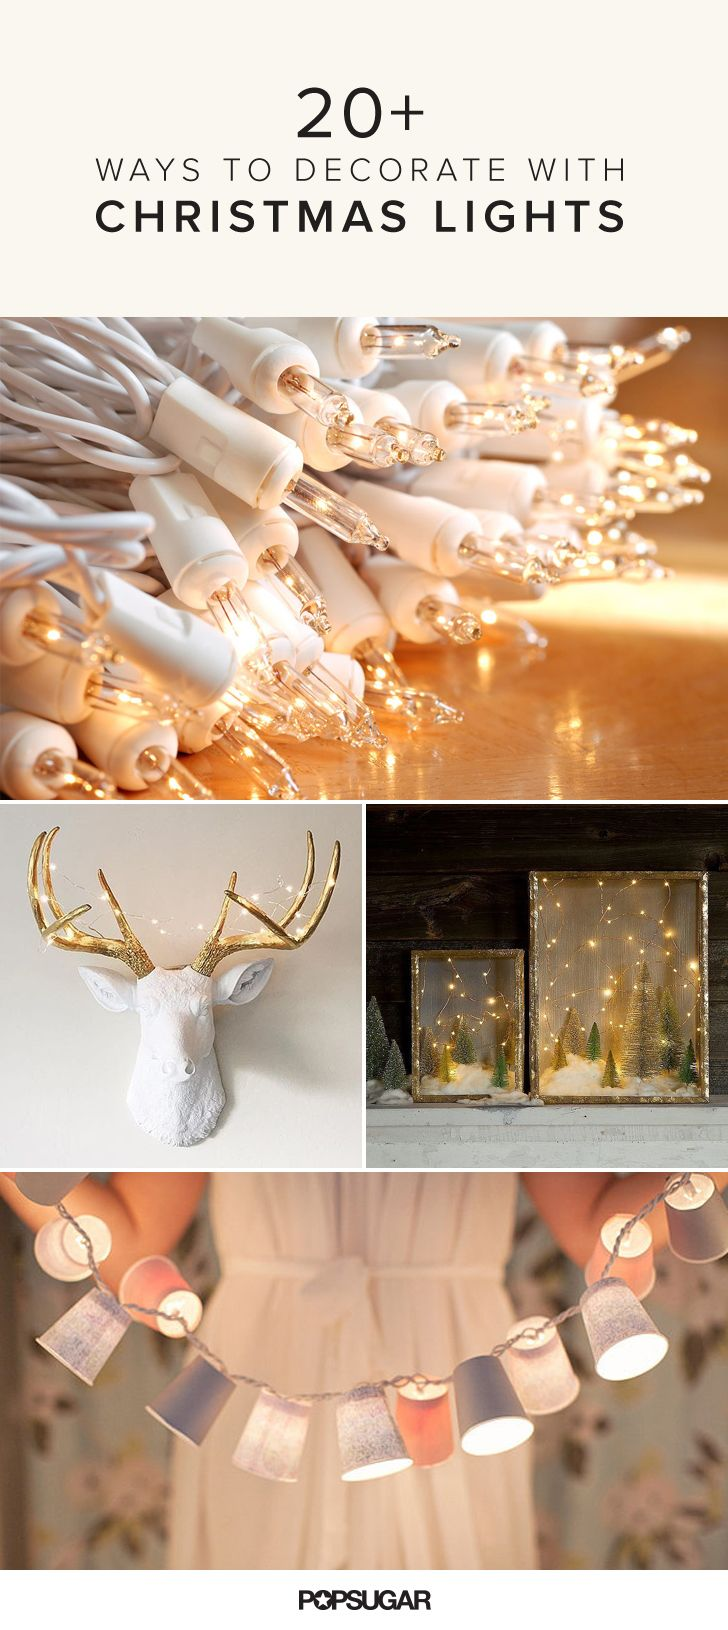 31 Unique Ways To Decorate With Christmas Lights